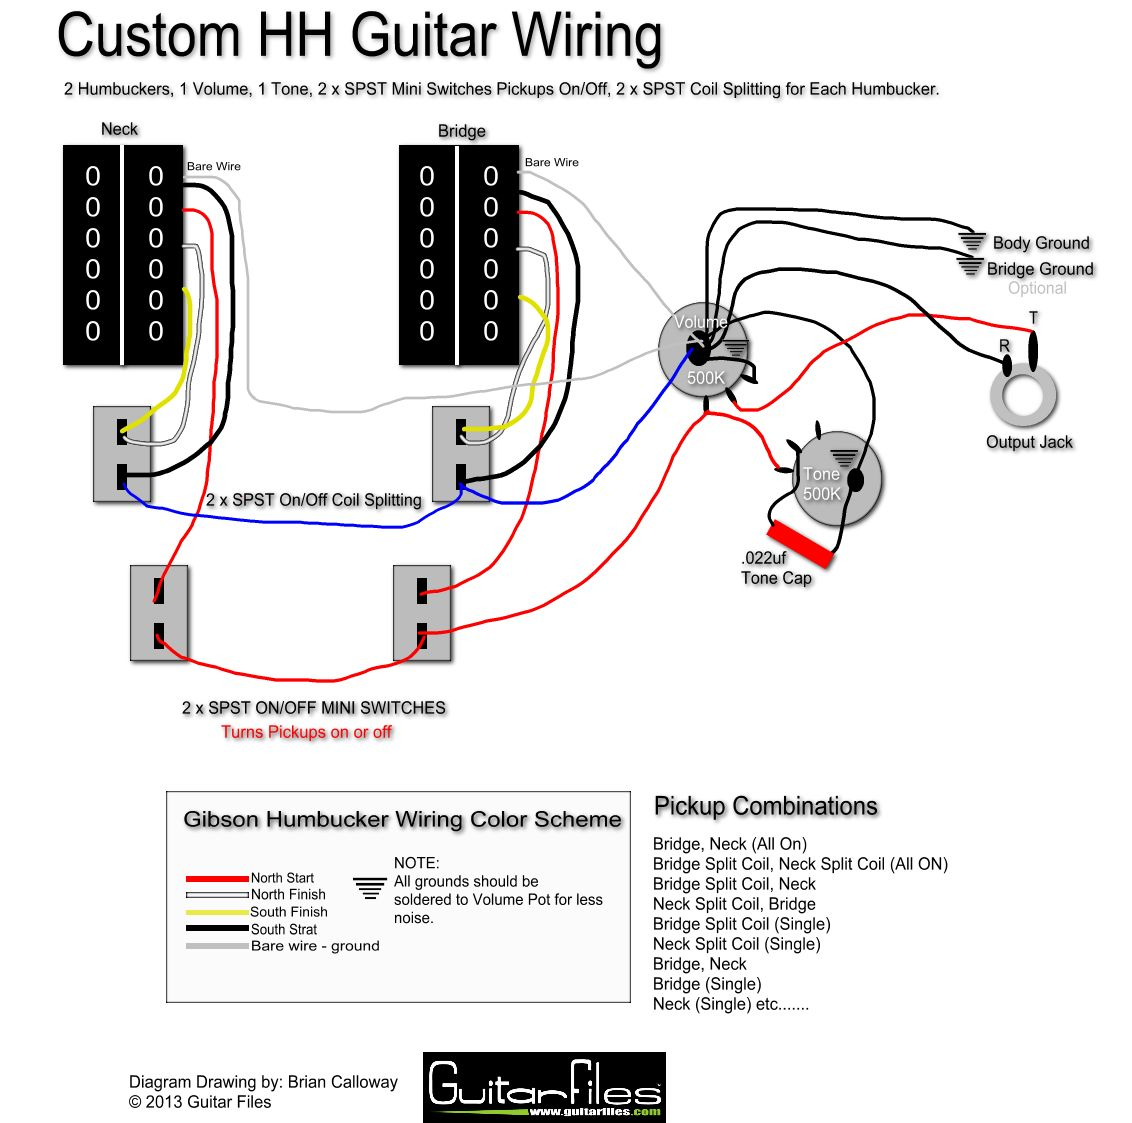 afe4f8370c0d308d426df63ec12f015c custom hh wiring diagram with spst coil splitting and spst ho wiring diagram at eliteediting.co